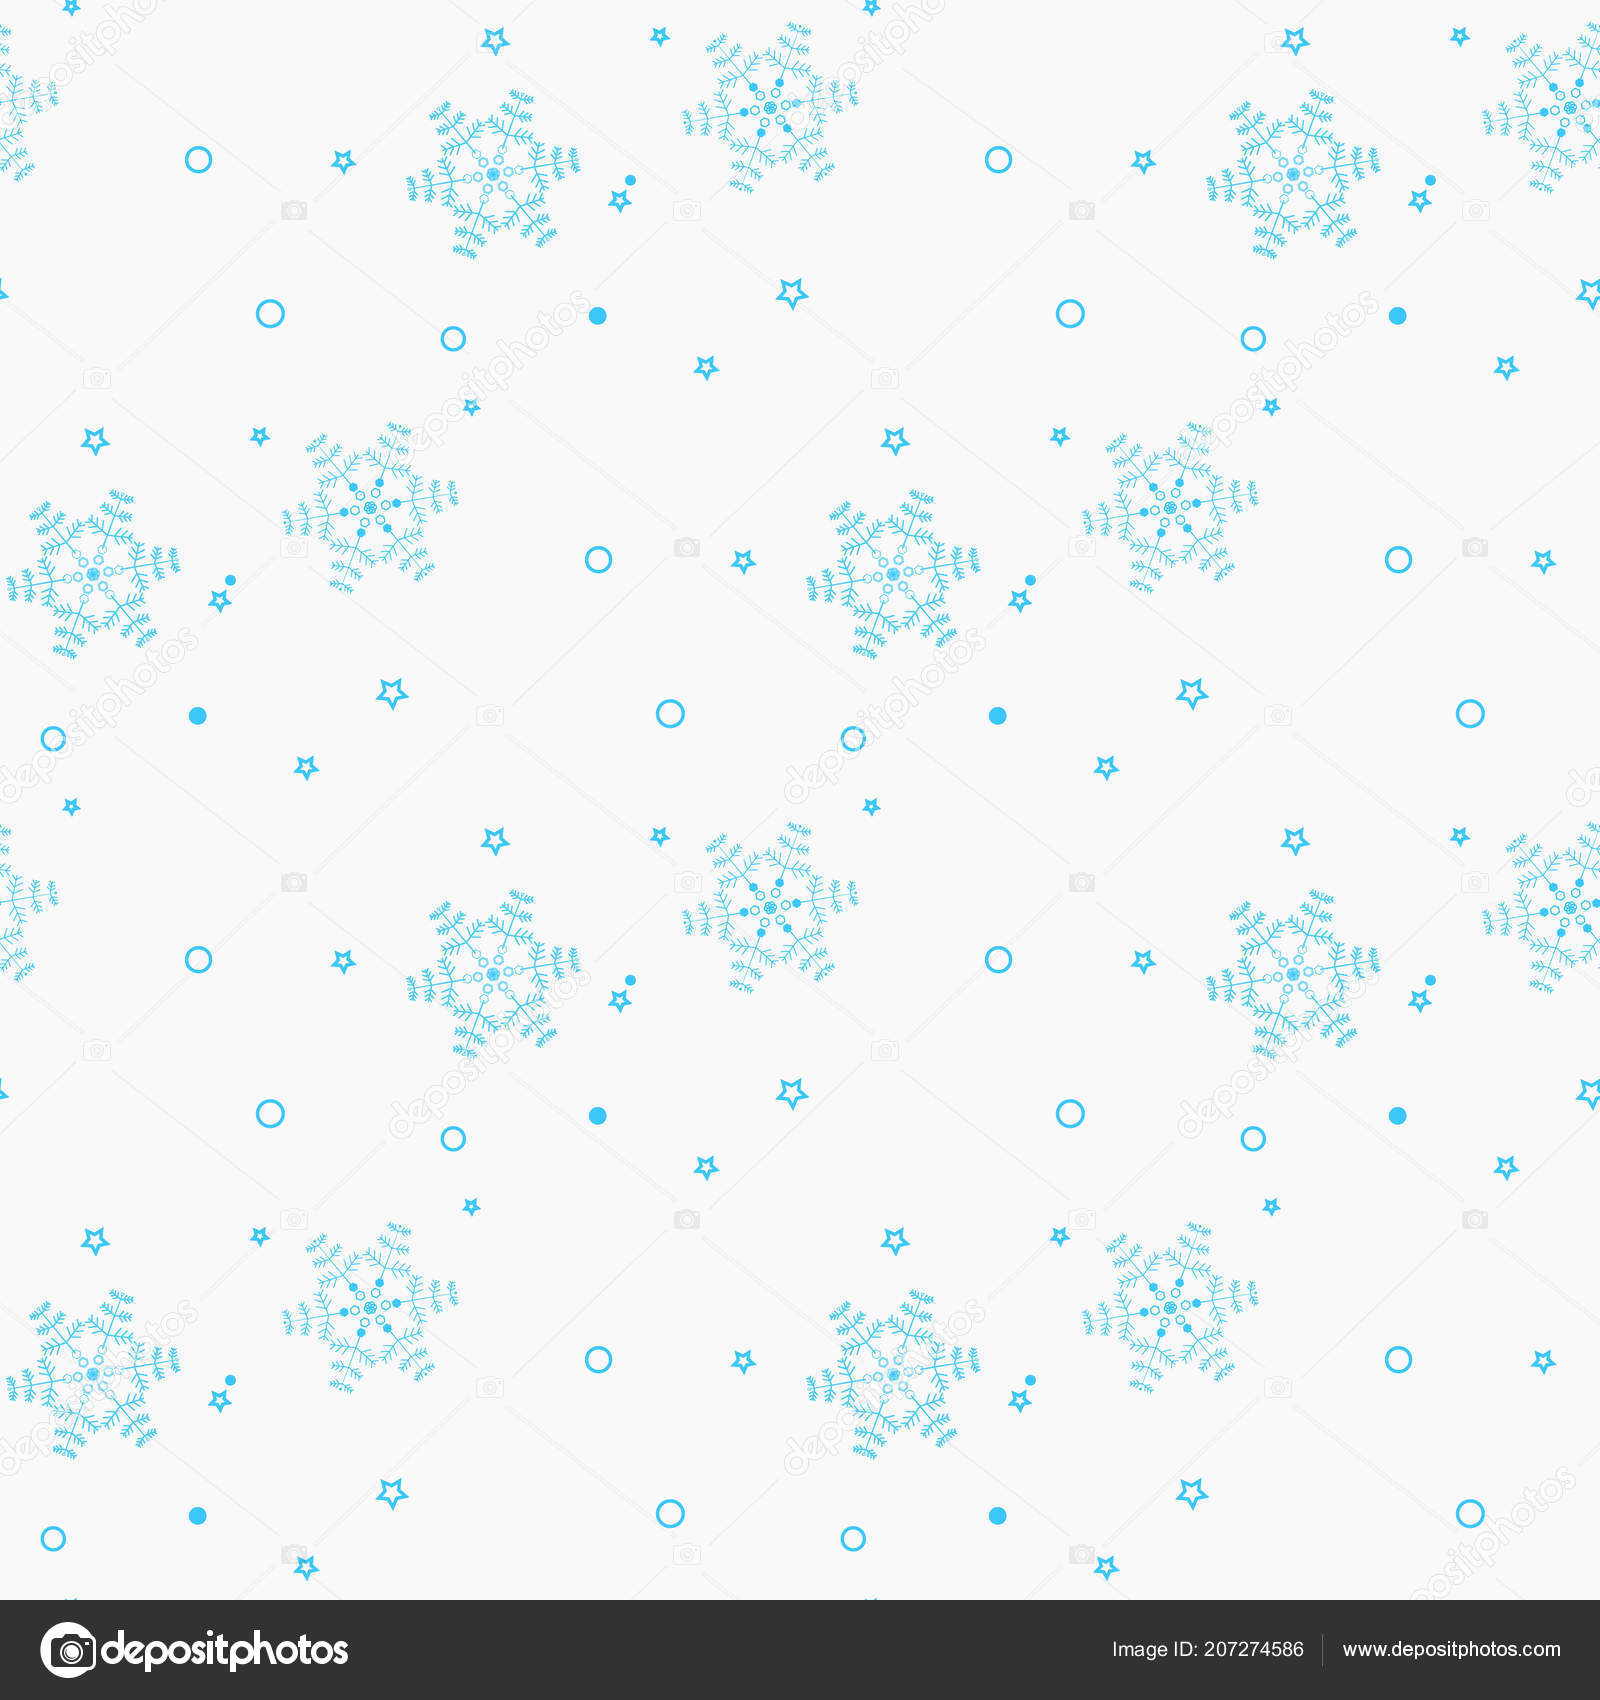 Snowflake simple seamless pattern. Blue snow on white